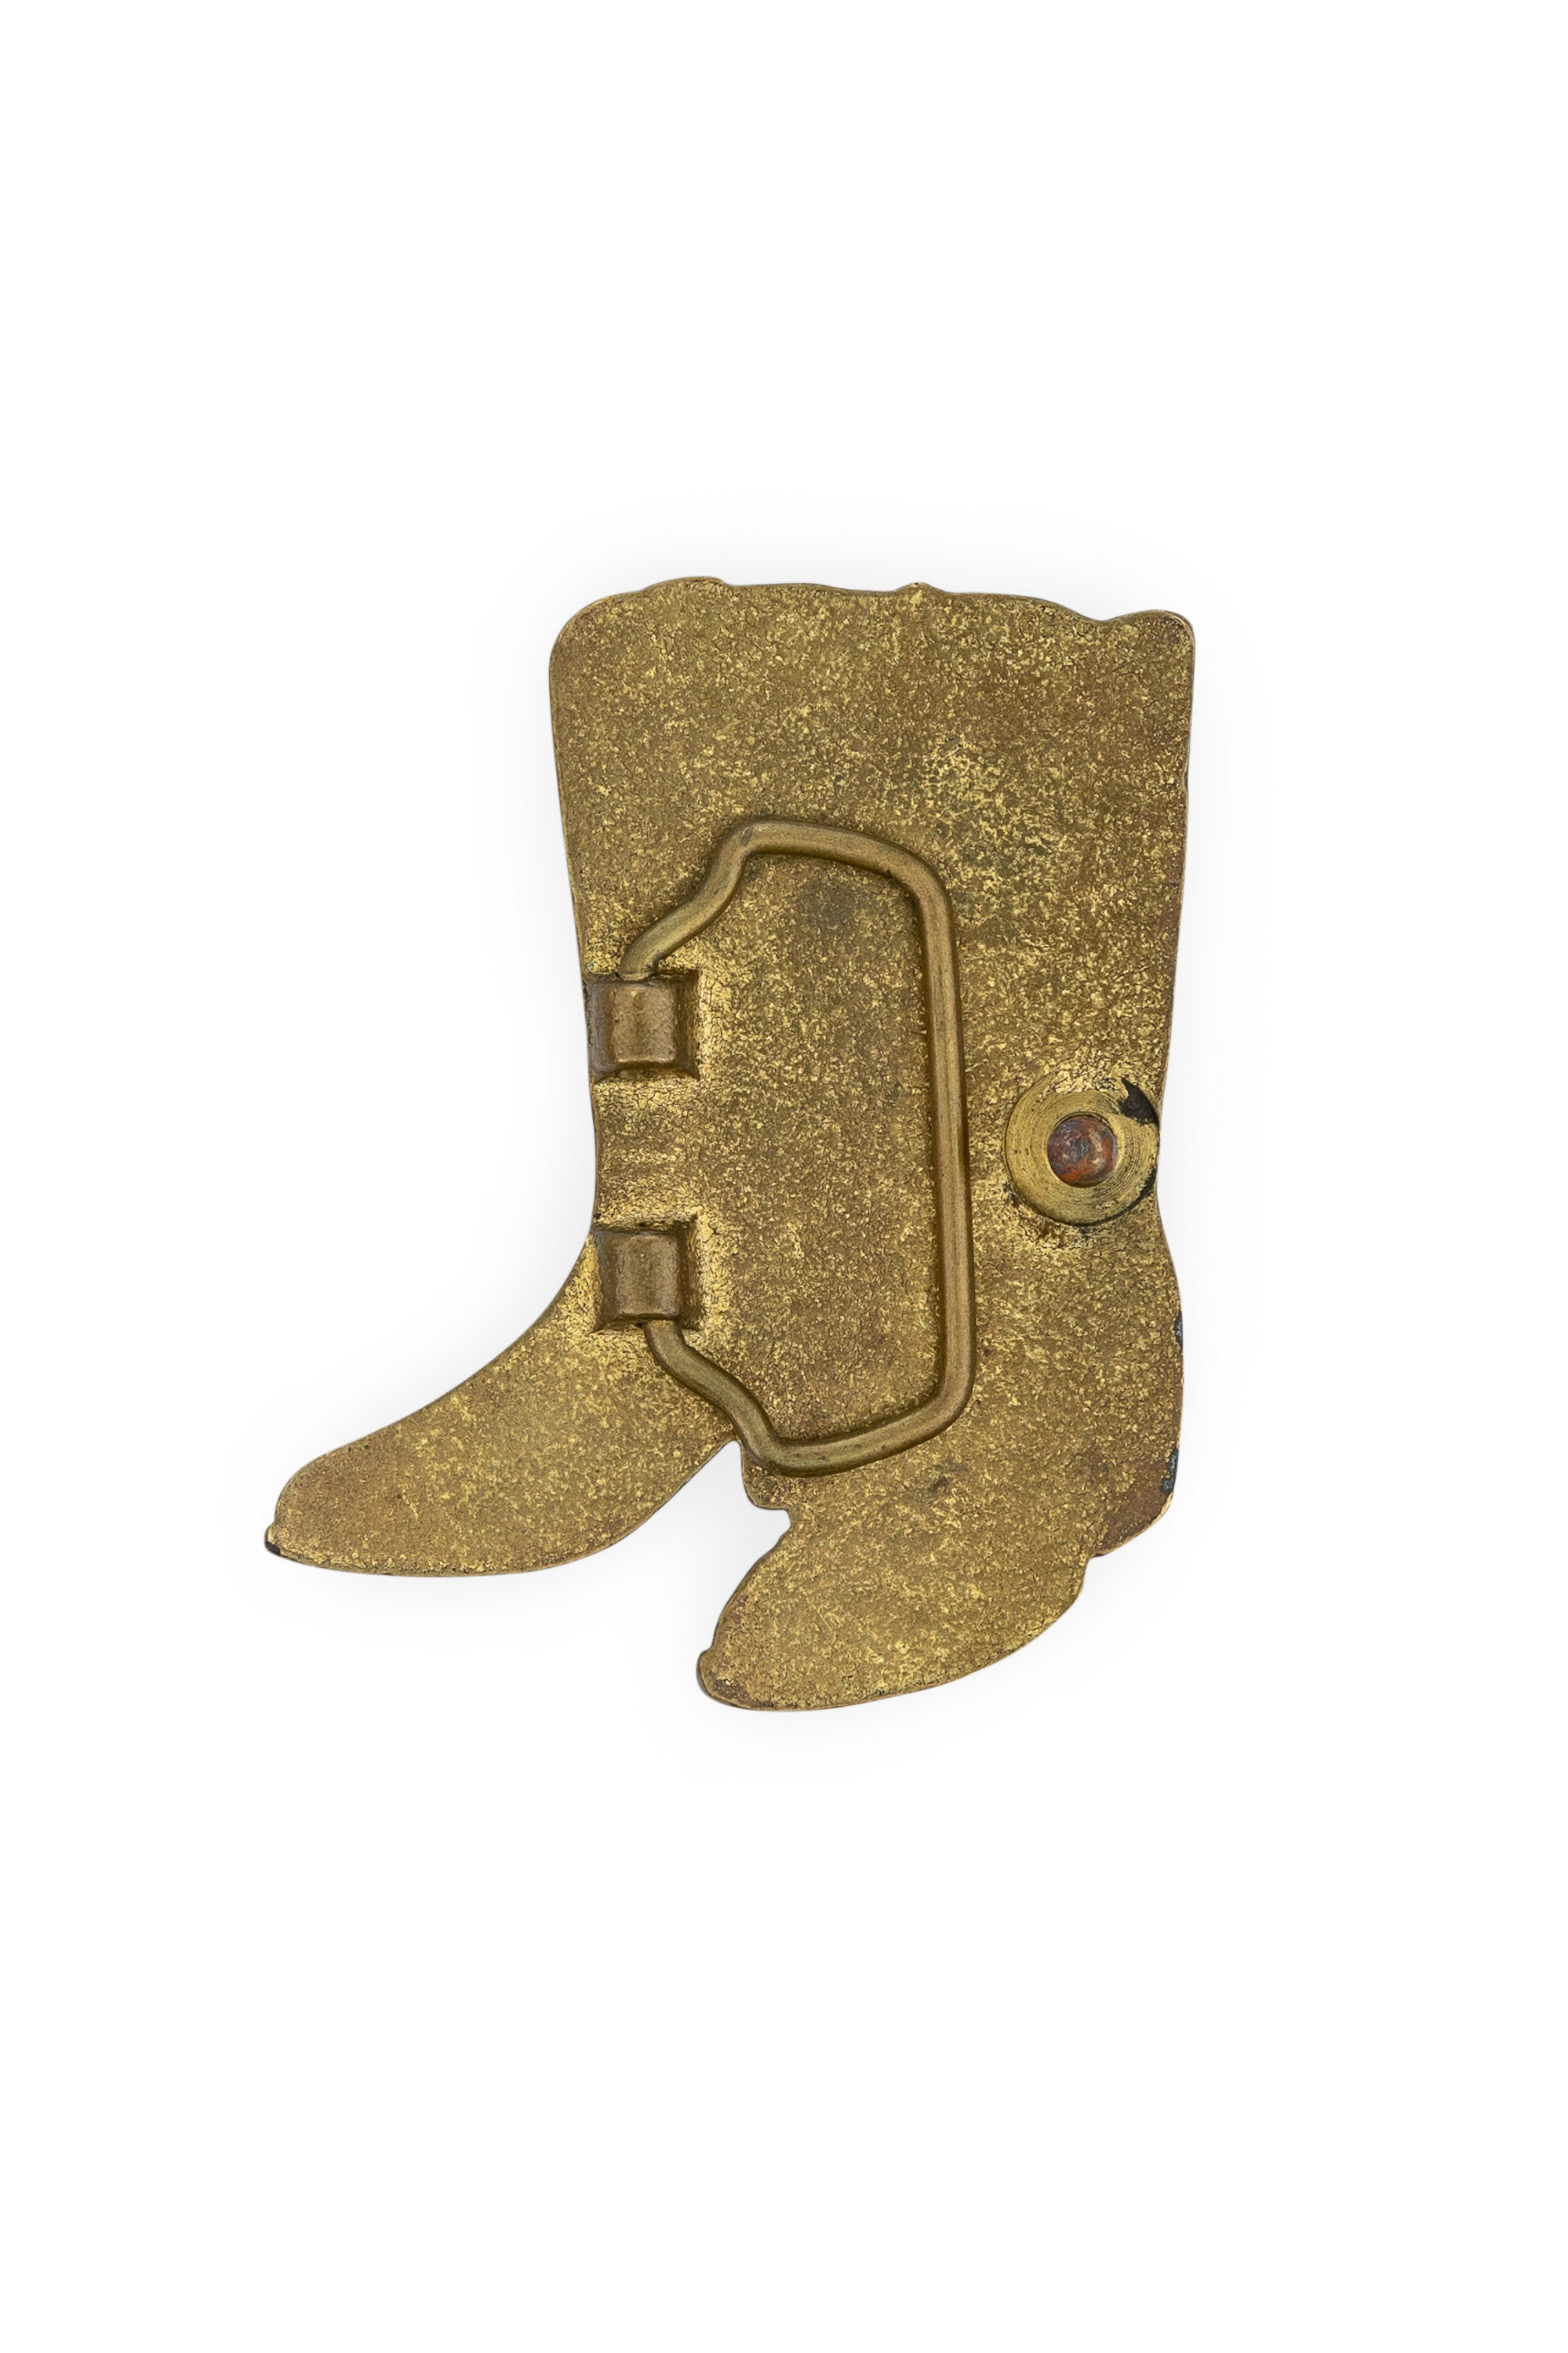 Buckle, Boots, Brass, Vintage, 111